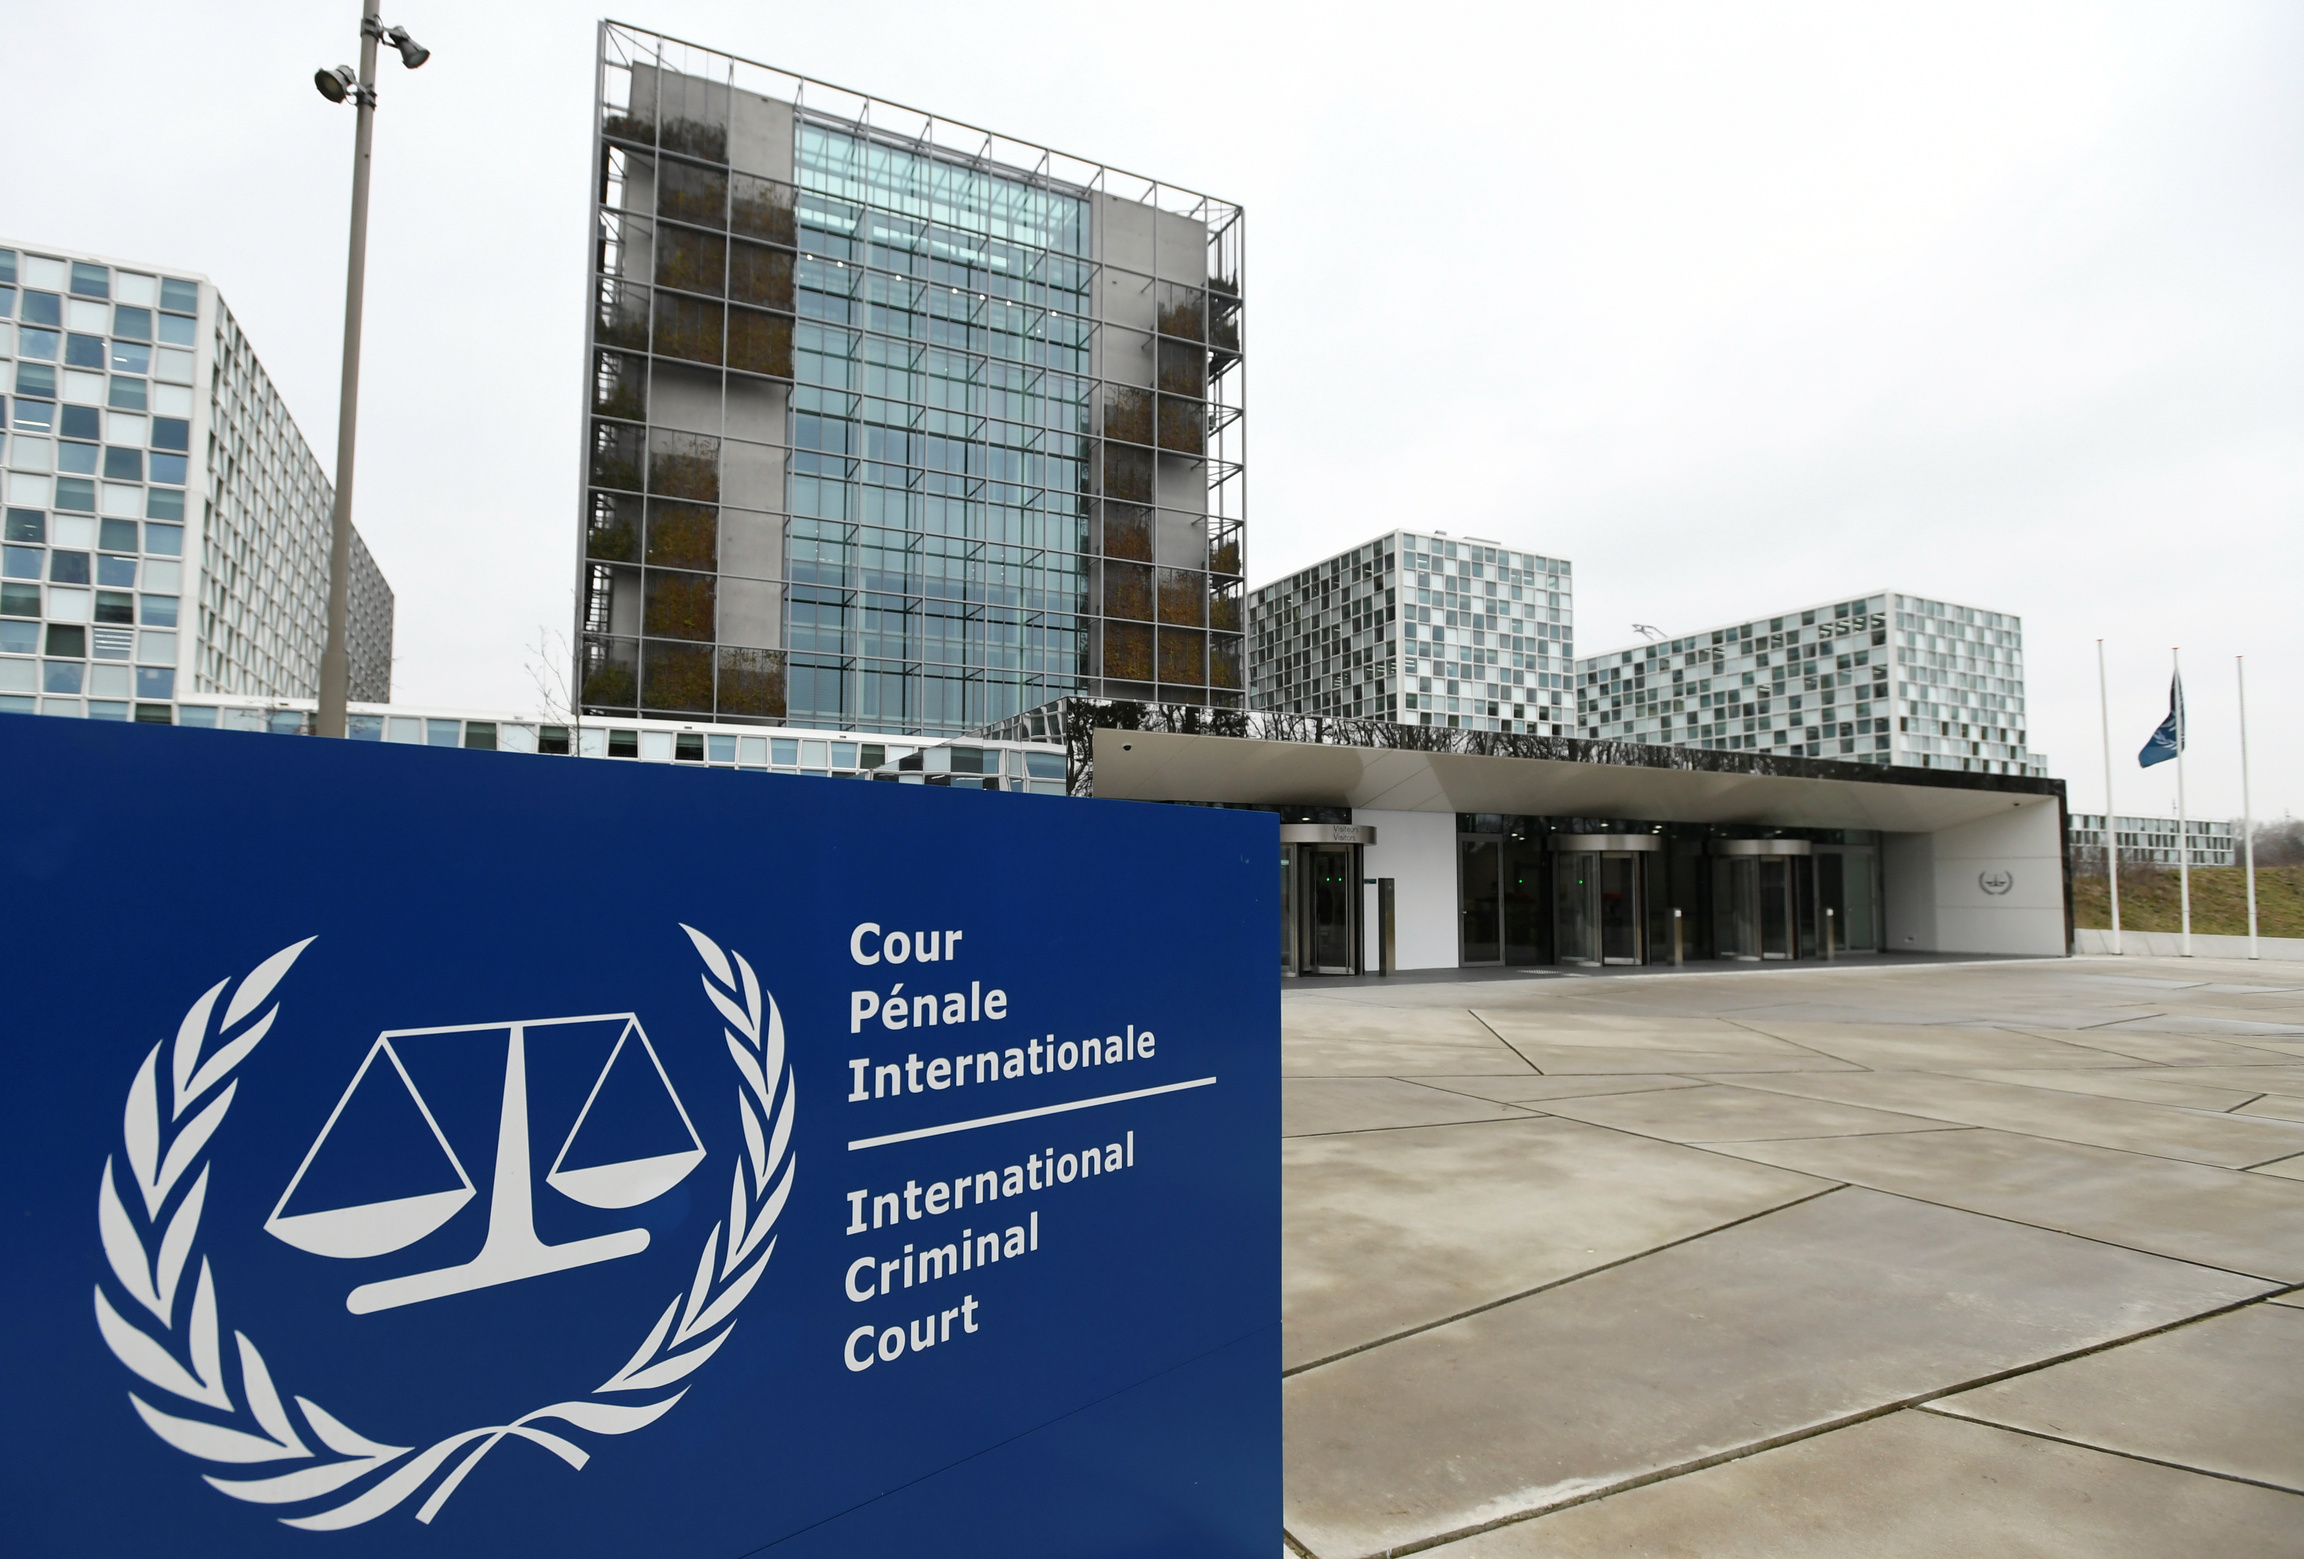 Exterior photo of the International Criminal Court building.